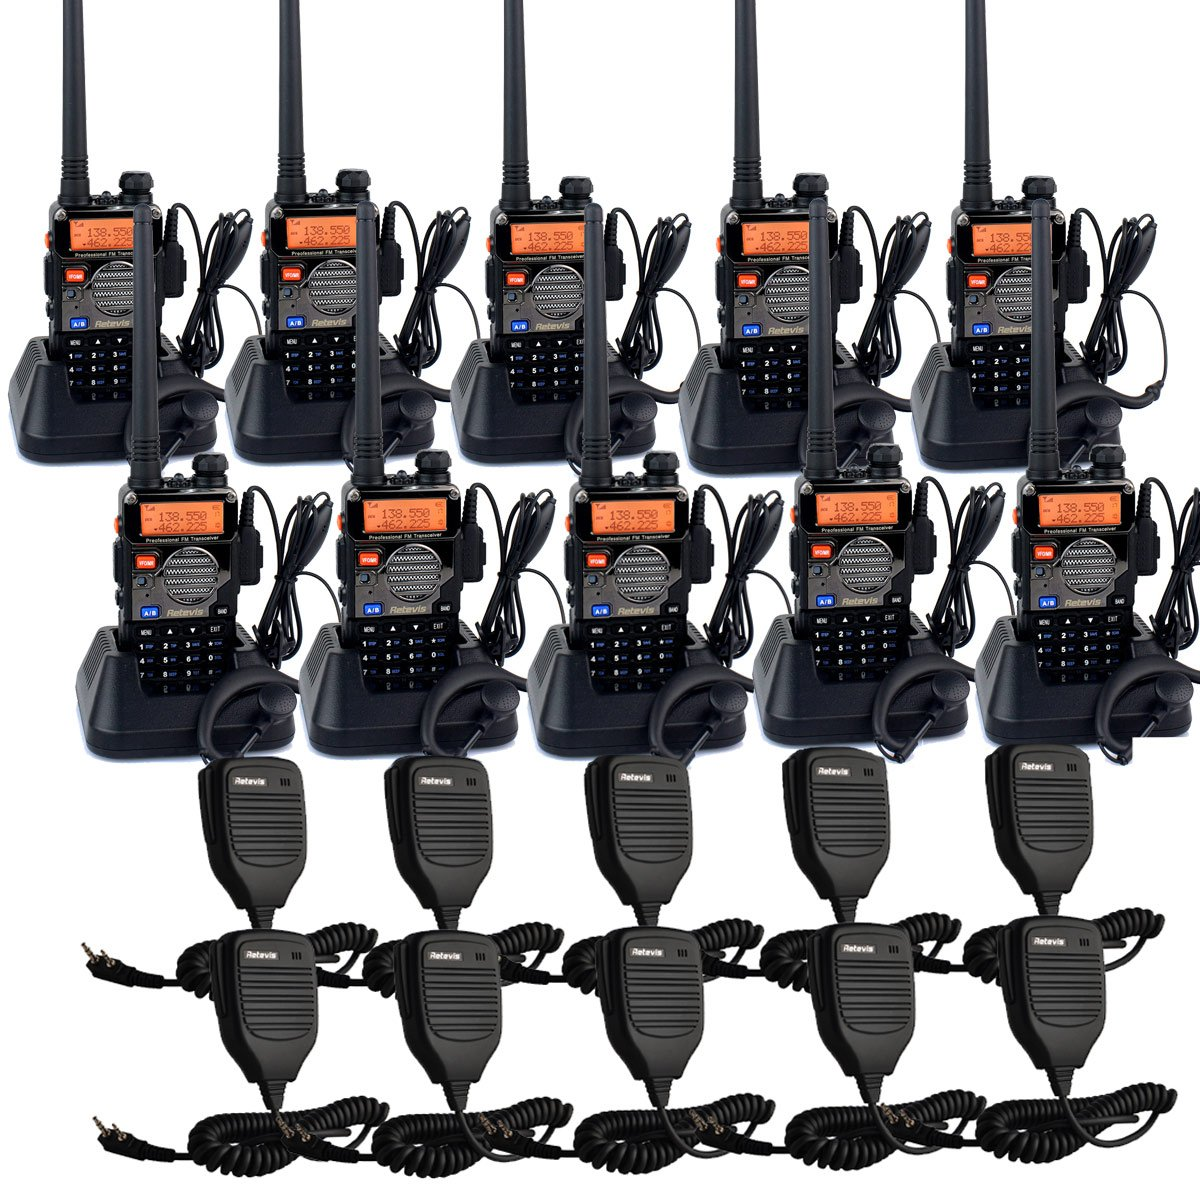 Retevis RT-5RV Walkie Talkies 5W 128CH Dual Band VHF/UHF 136-174/400-520 MHz VOX CTCSS/DCS FM Ham Radio with Earpiece (10 Pack) and Speaker Mic (10 Pack) by Retevis (Image #1)